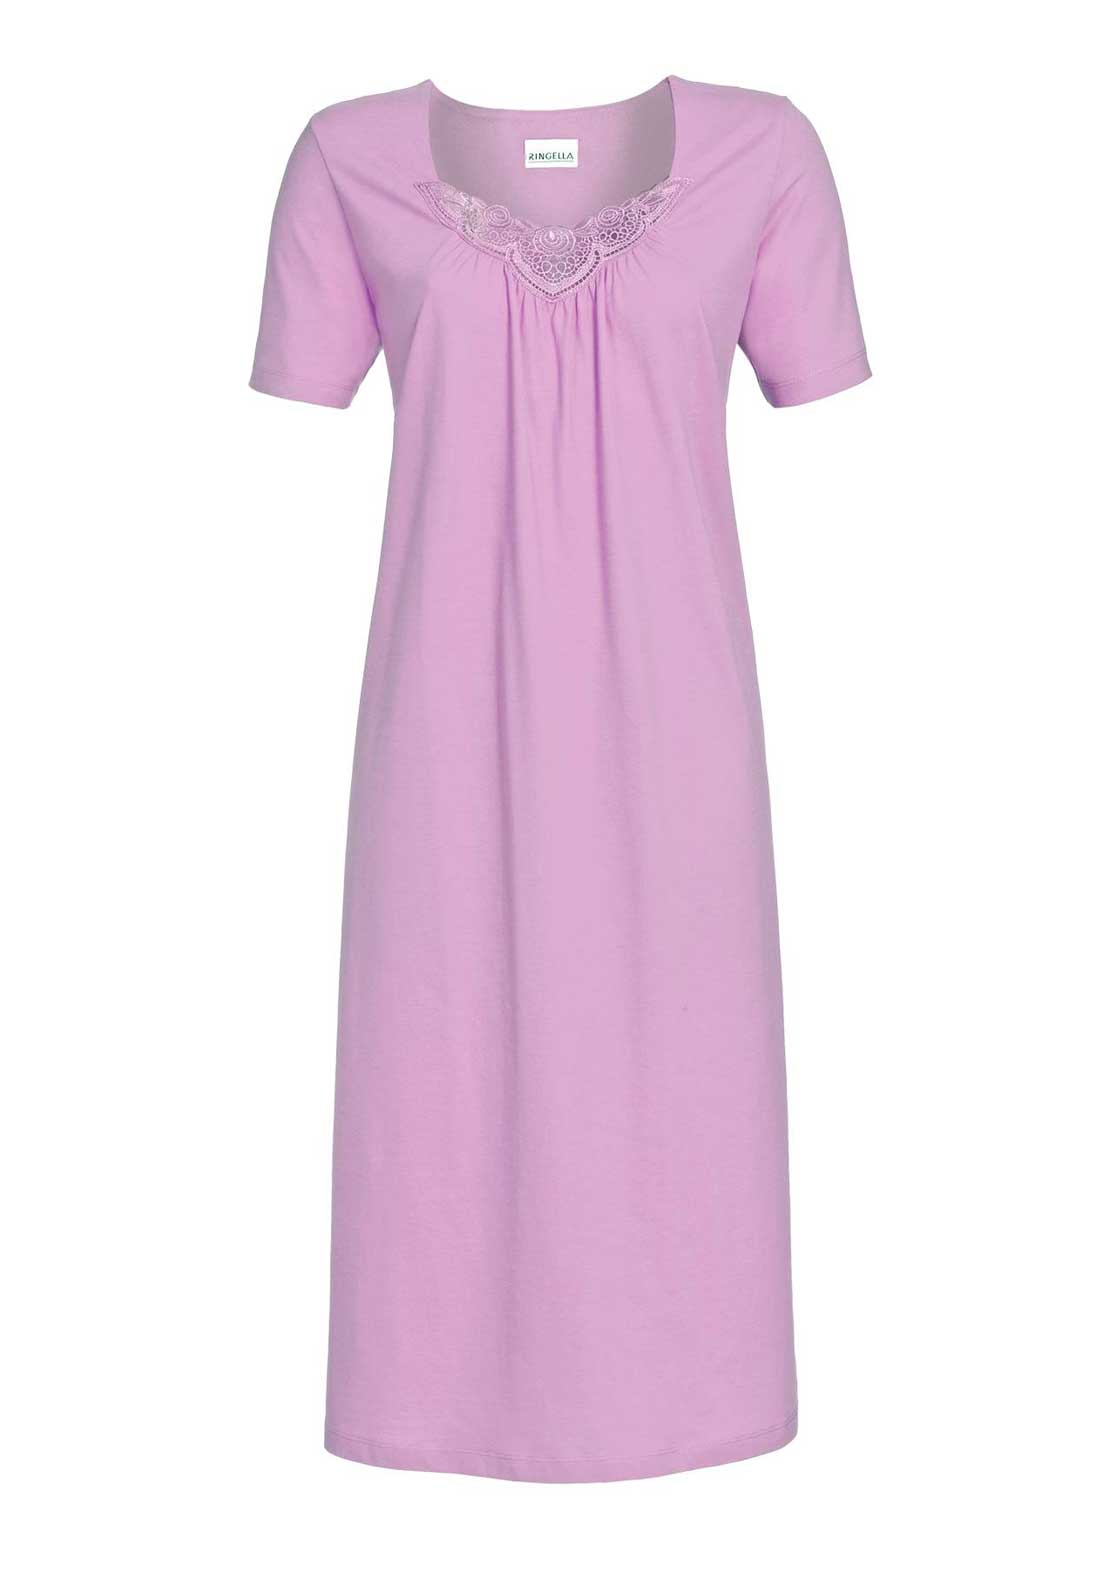 Ringella Lace Trim Short Sleeve Cotton Nightdress, Lilac